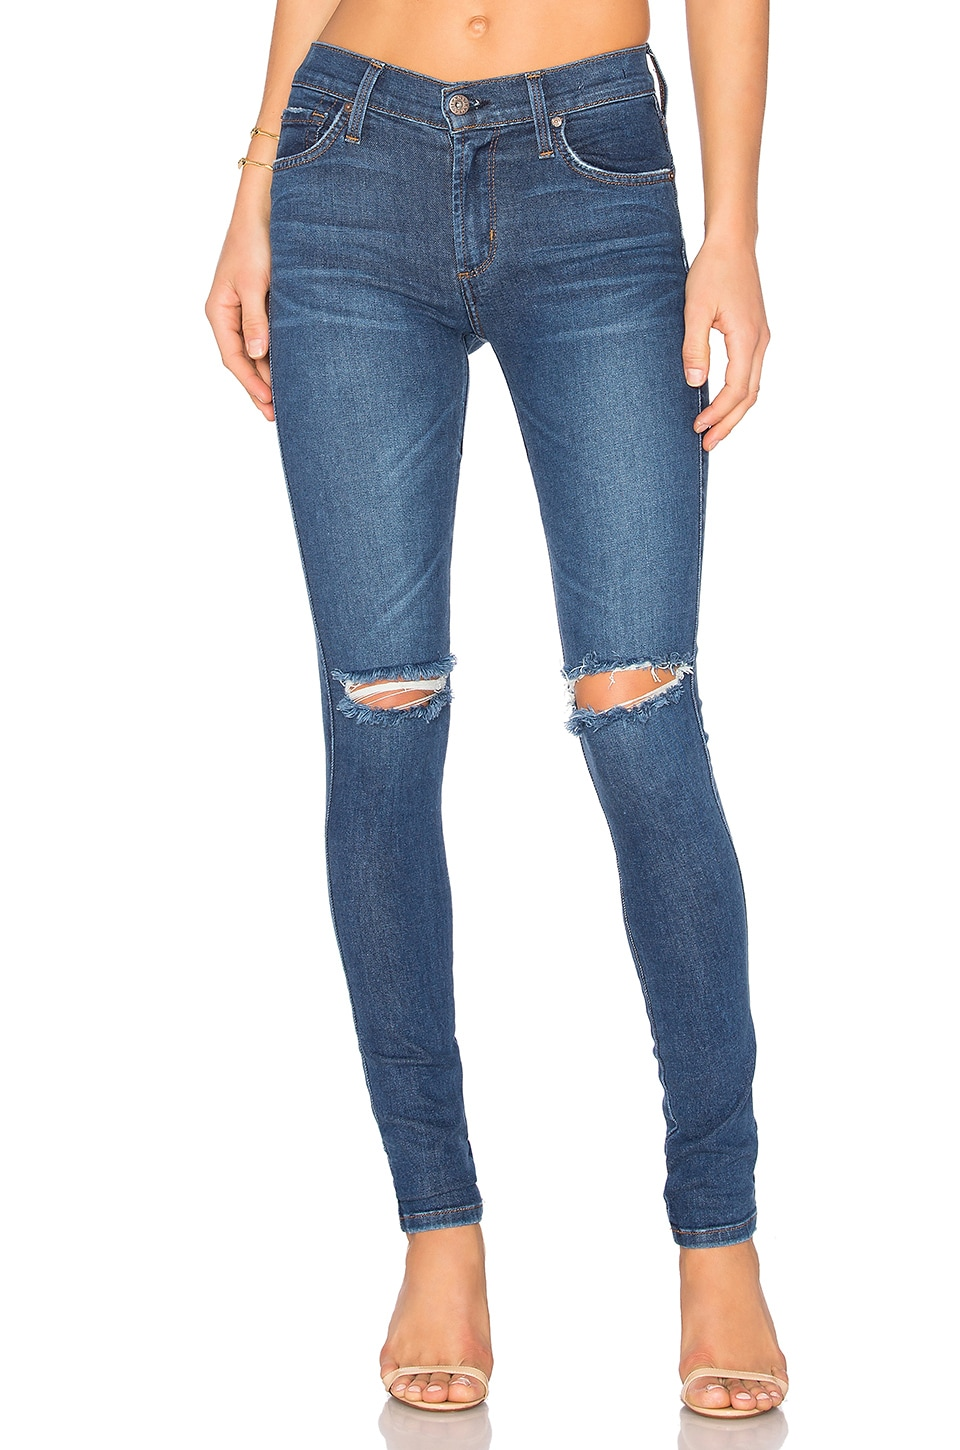 Twiggy Legging by James Jeans